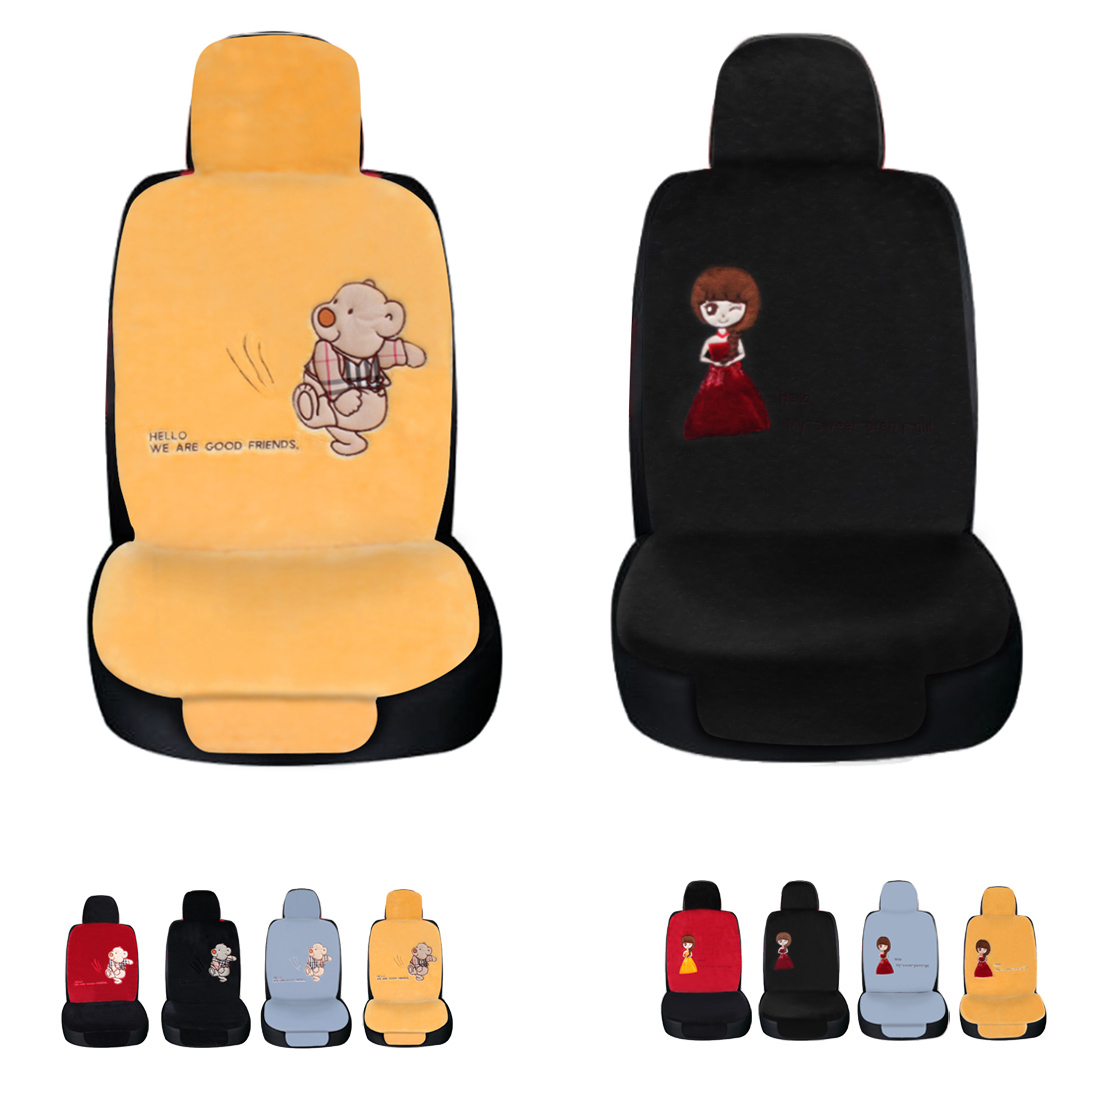 Dewtreetali Single Front Car Seat Cover Car Seat Cushion Bear Girl Winter Plush Cushion Car Seat Covers for Auto Van Truck 3 8 bsp female air compressor pneumatic quick coupler connector socket fittings set